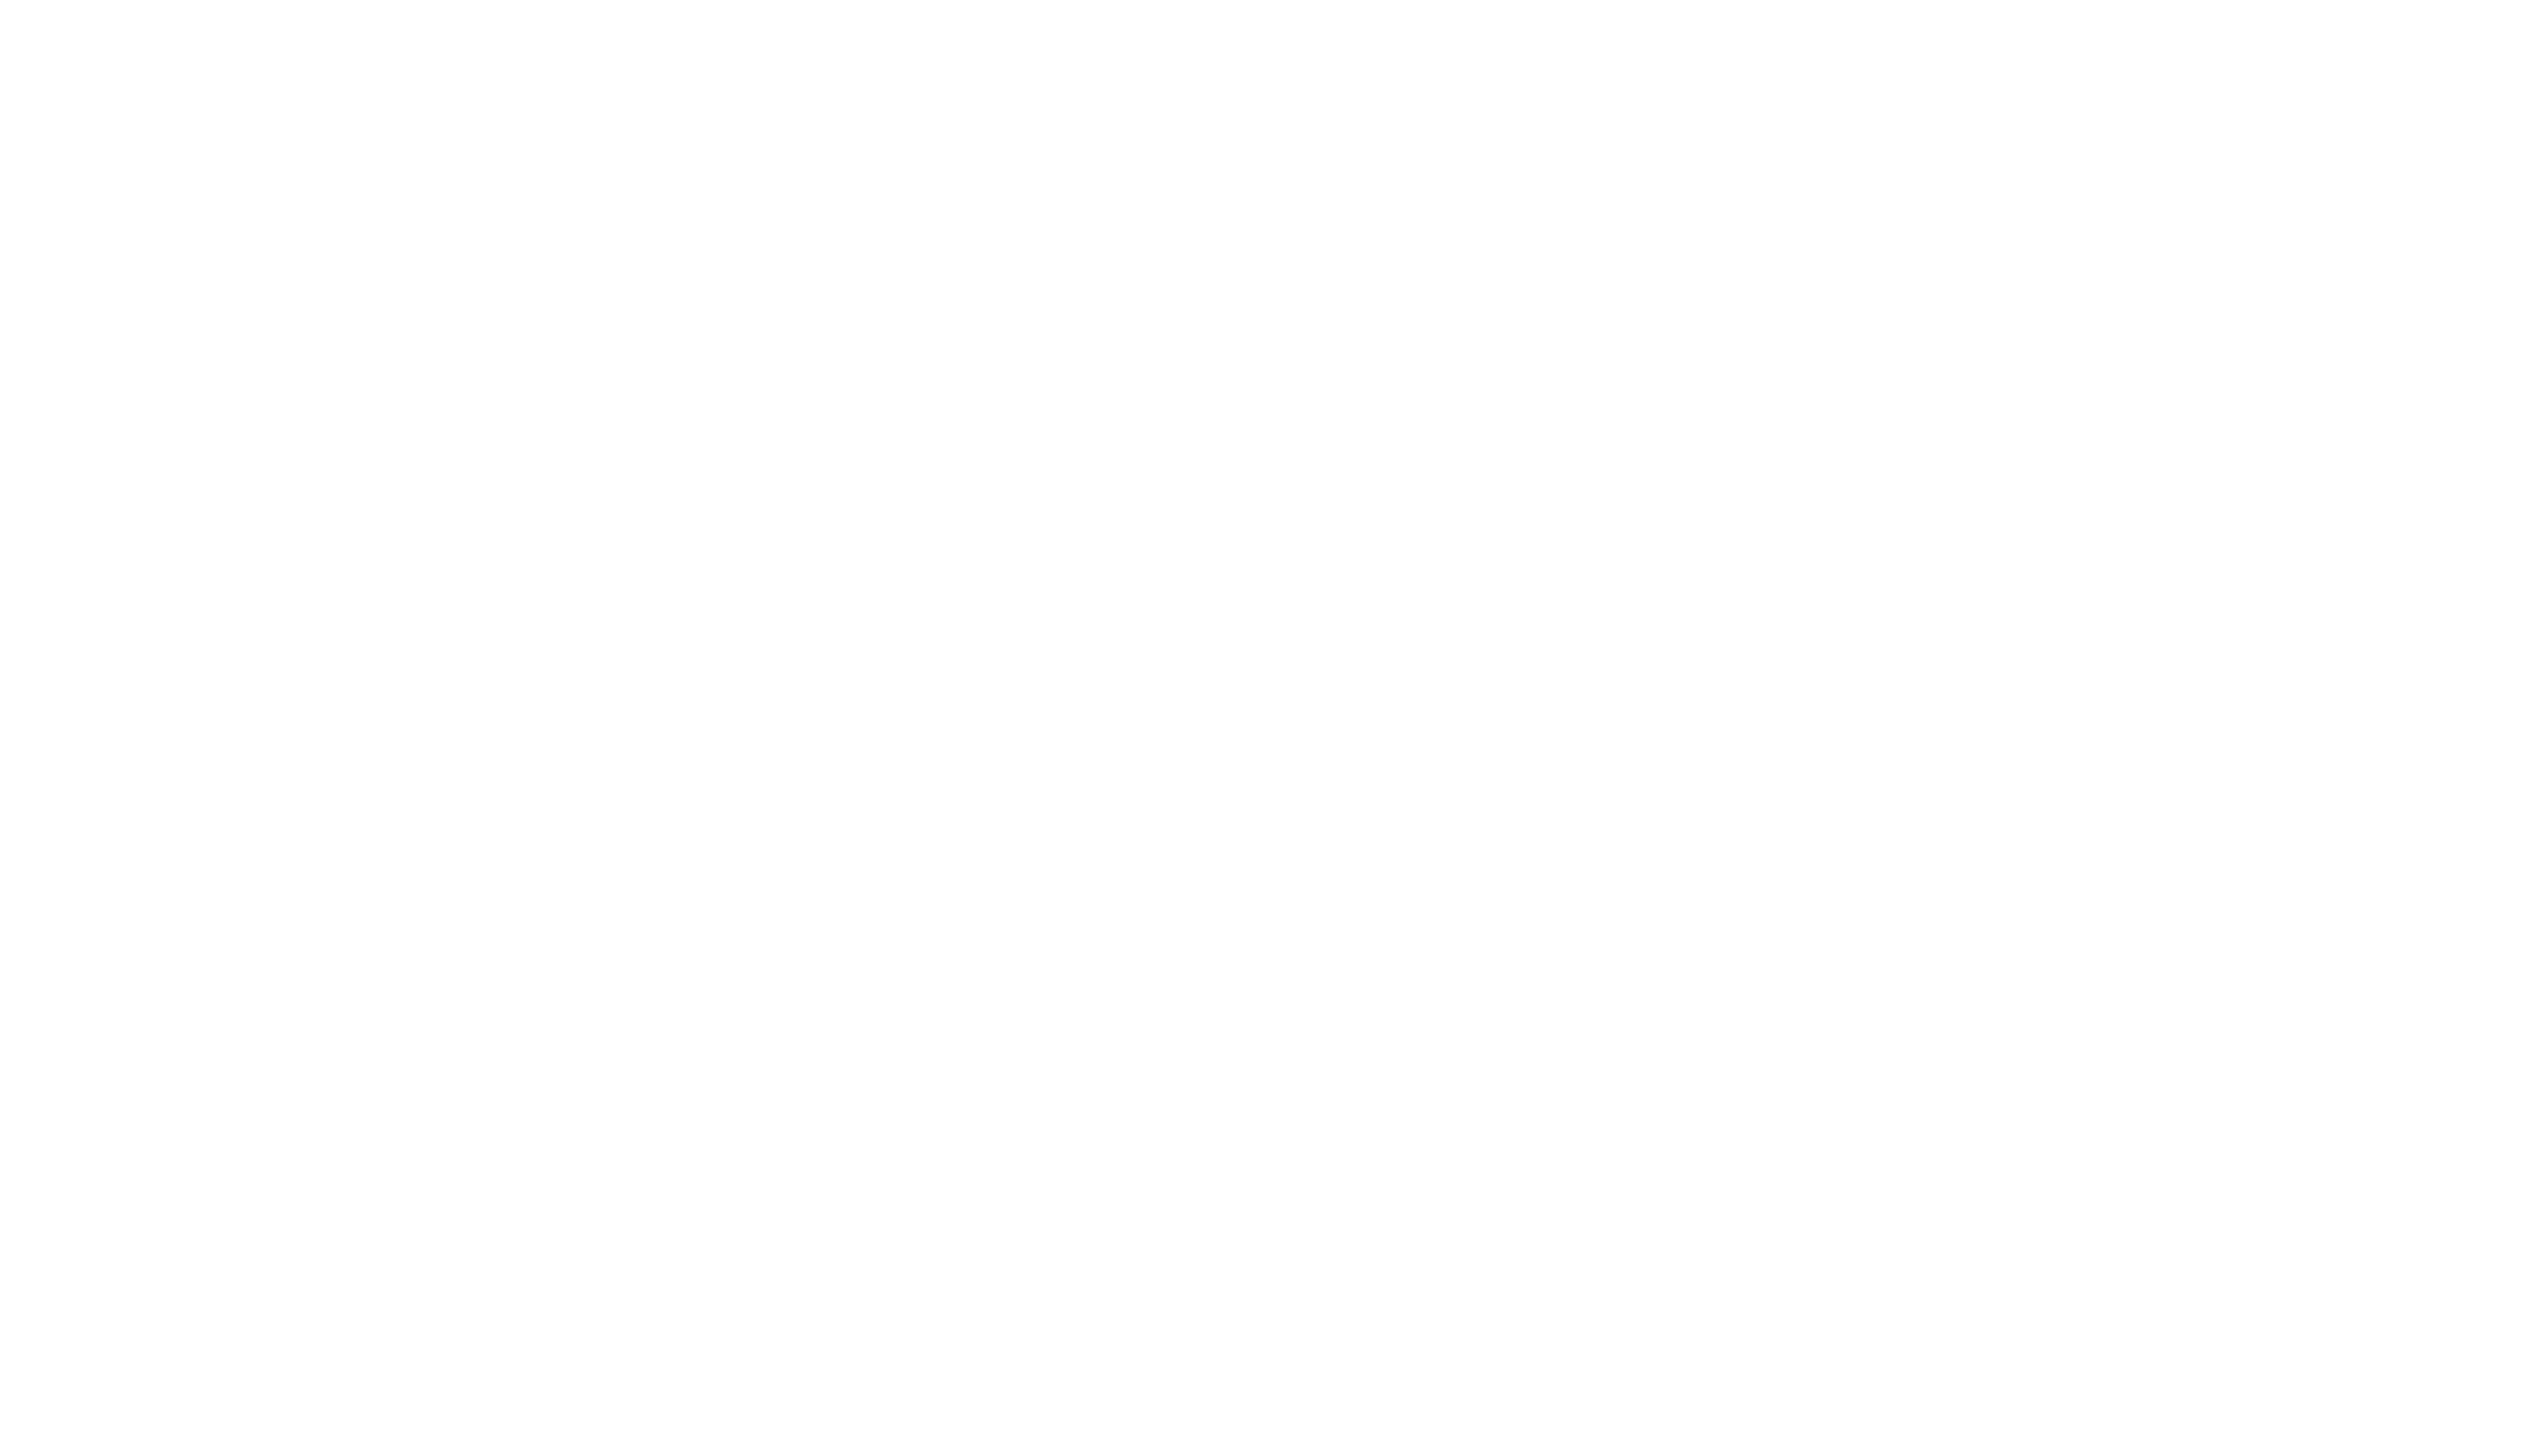 curtas de vila do conde